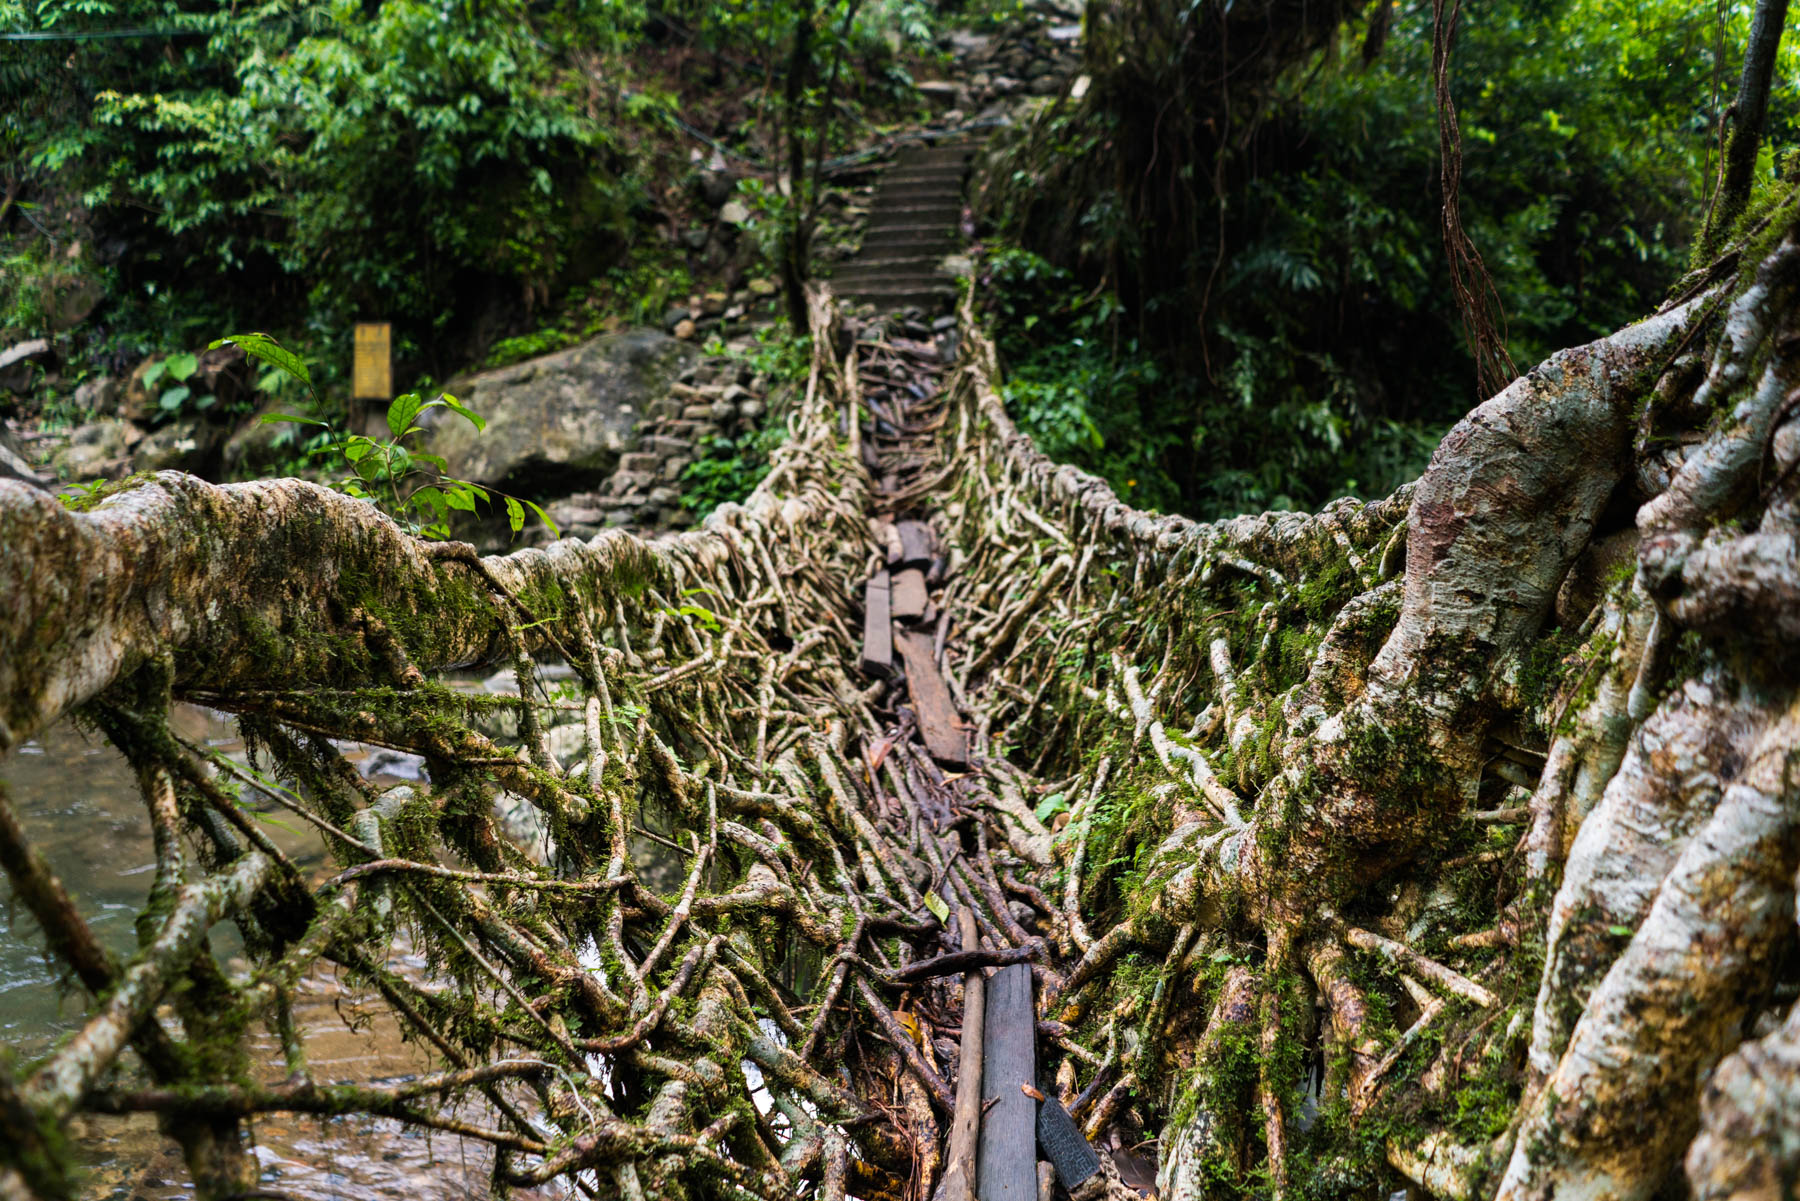 Photo essay of Nongriat and the living root bridges of Meghalaya, India - The lower level of Umshiang double-decker living root bridge - Lost With Purpose